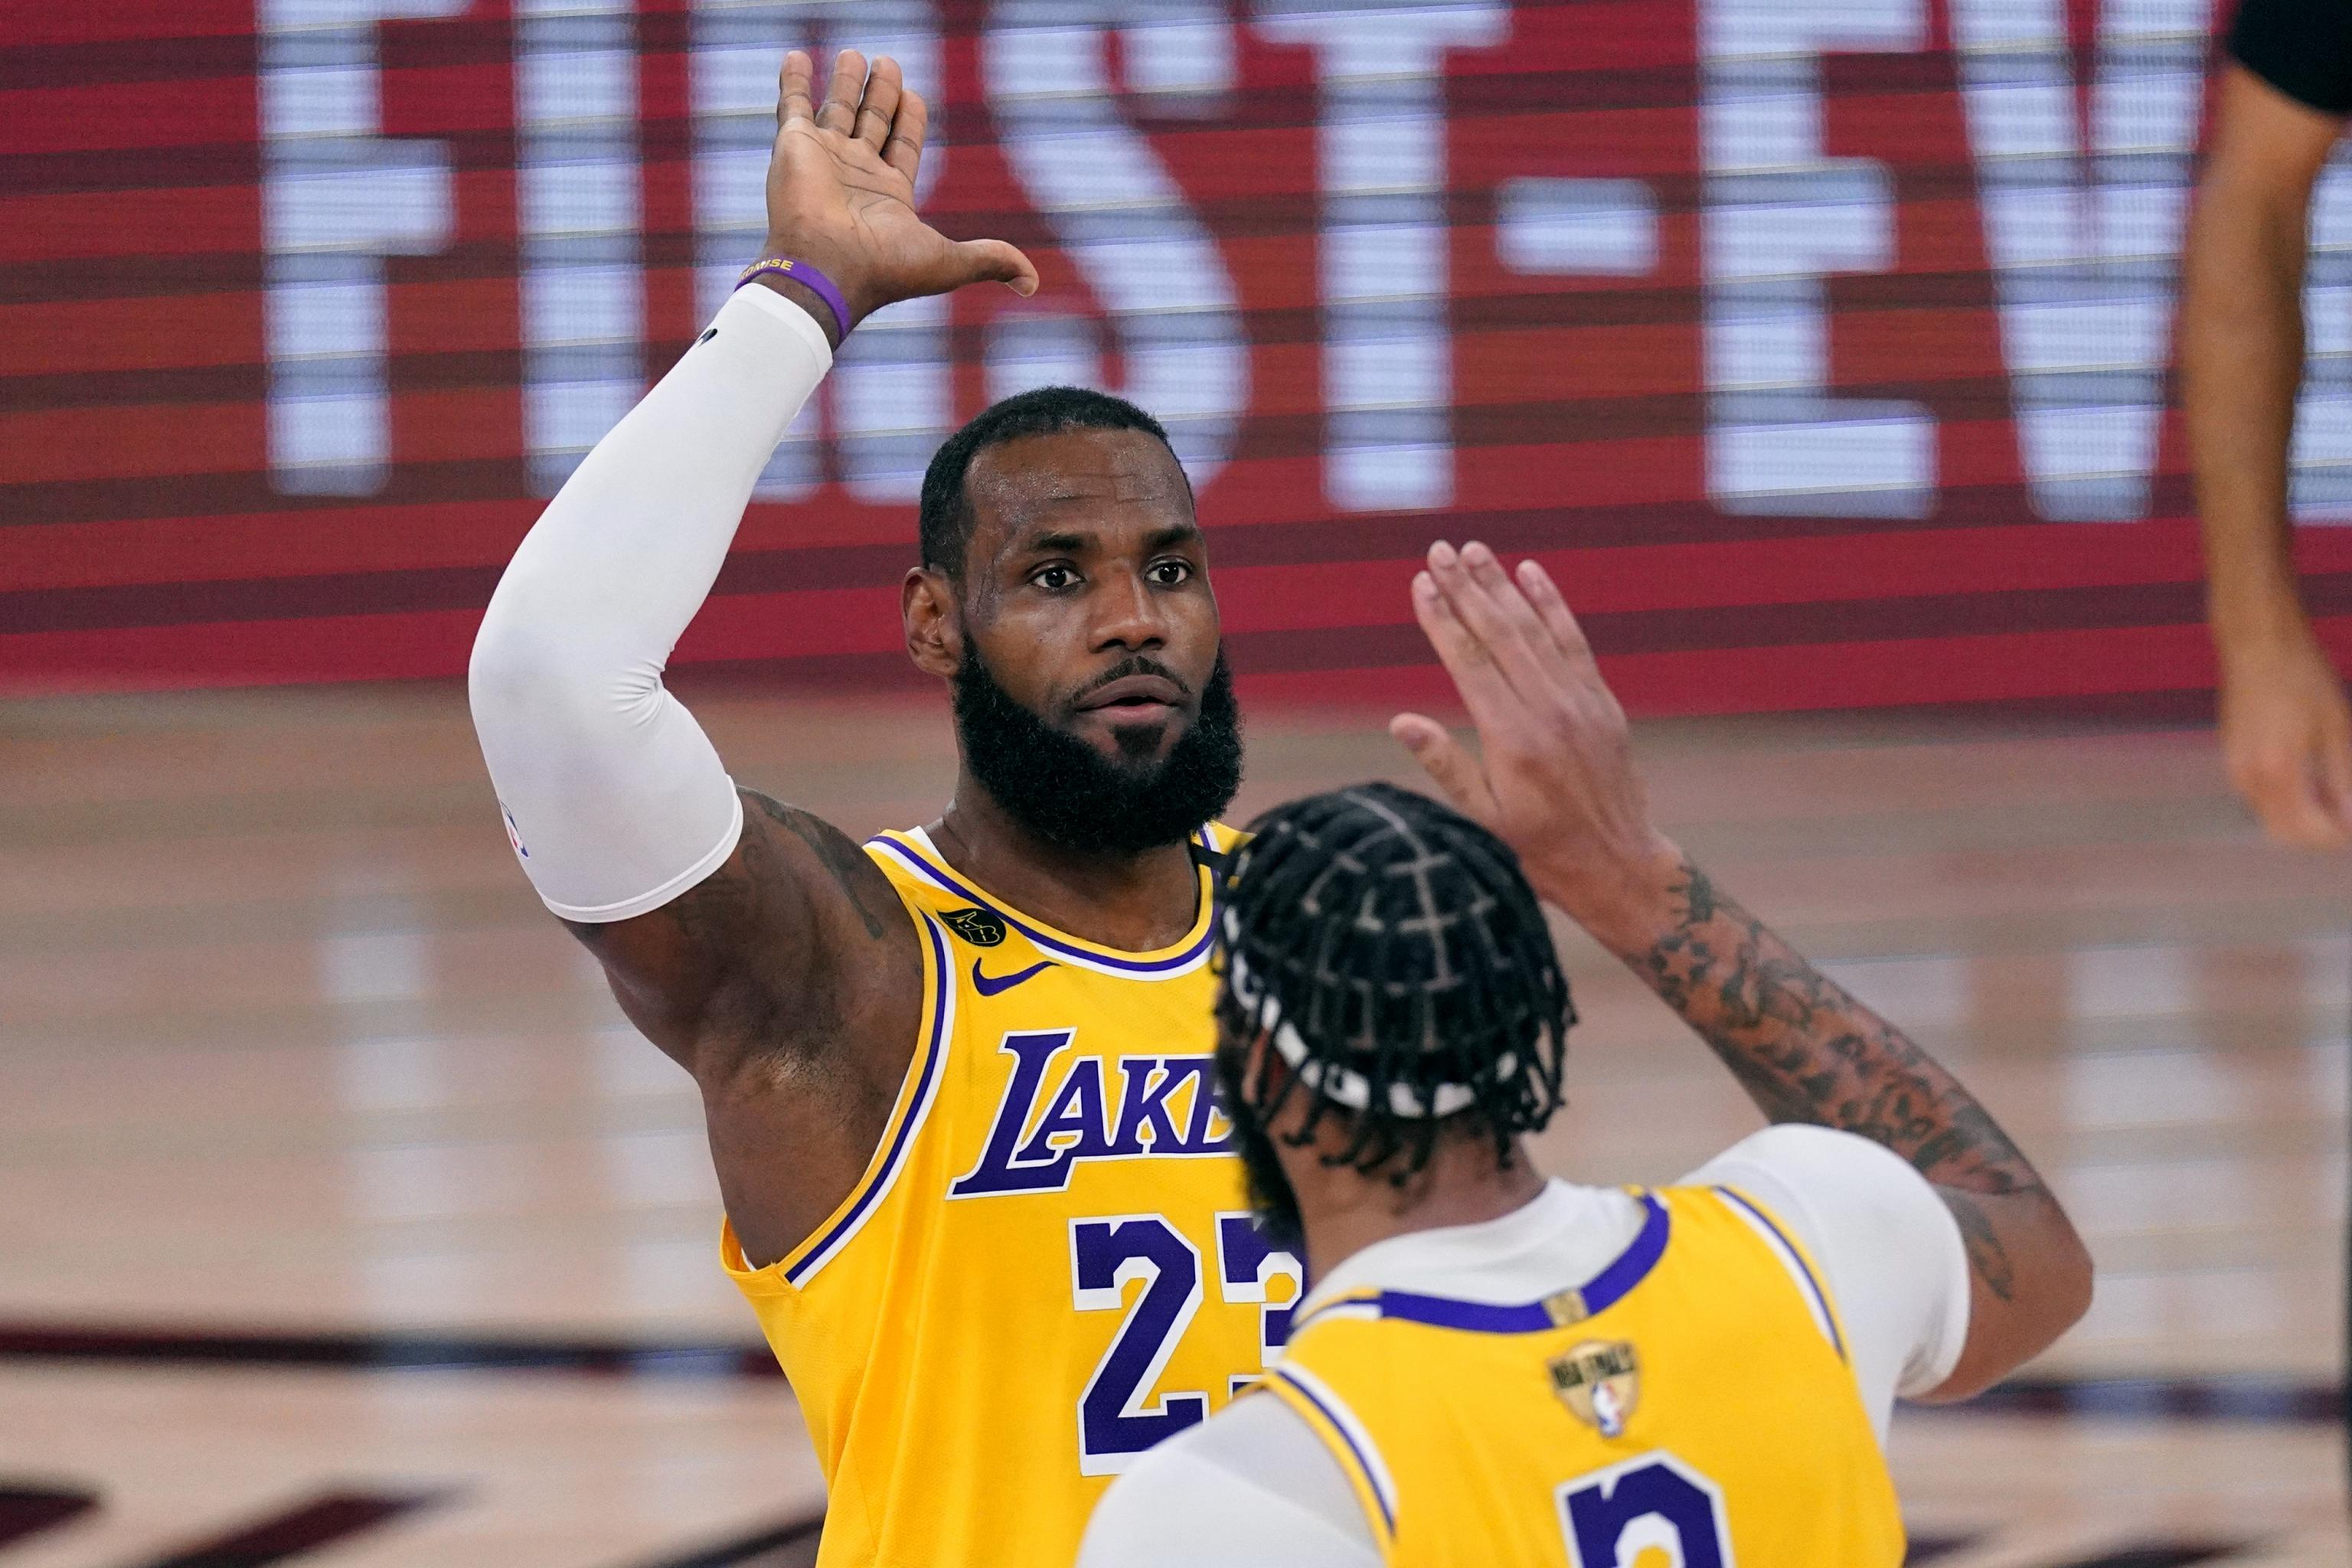 Heat Vs Lakers Game 2 Tv Schedule Live Stream Odds For 2020 Nba Finals Bleacher Report Latest News Videos And Highlights